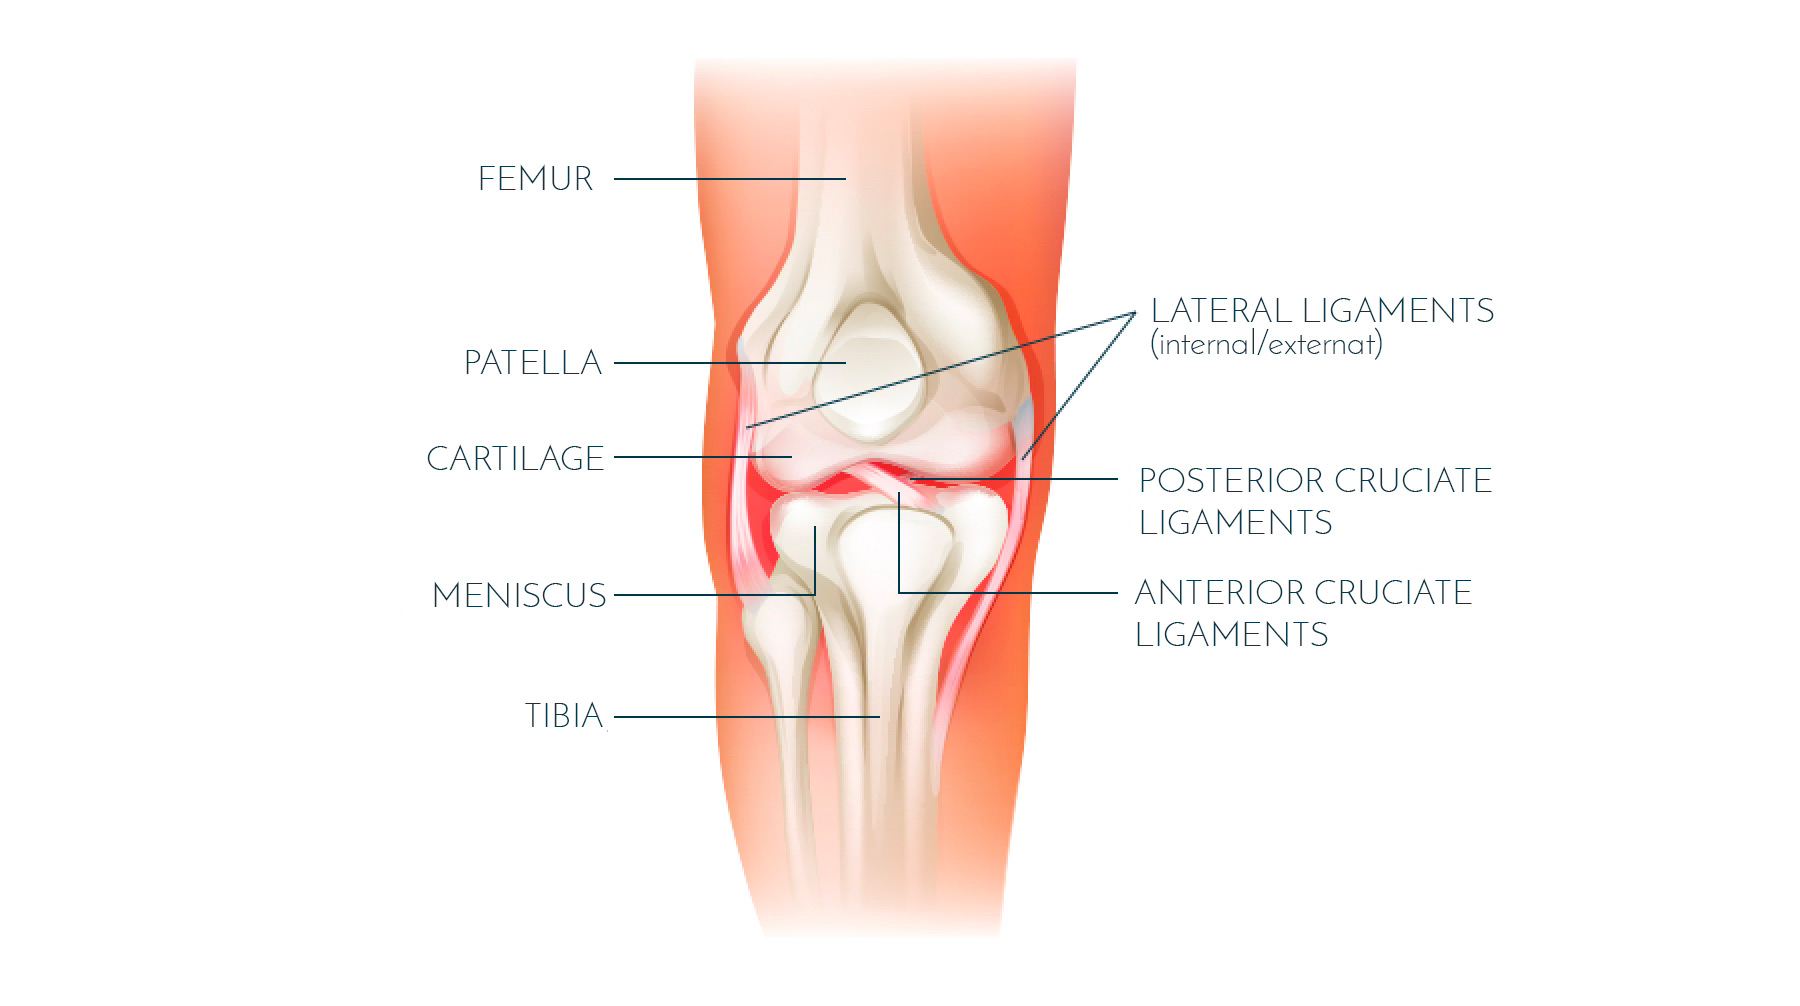 hight resolution of the anterior cruciate ligament acl is located in the middle of the knee forming part of the central pivot located within the notches of the femur